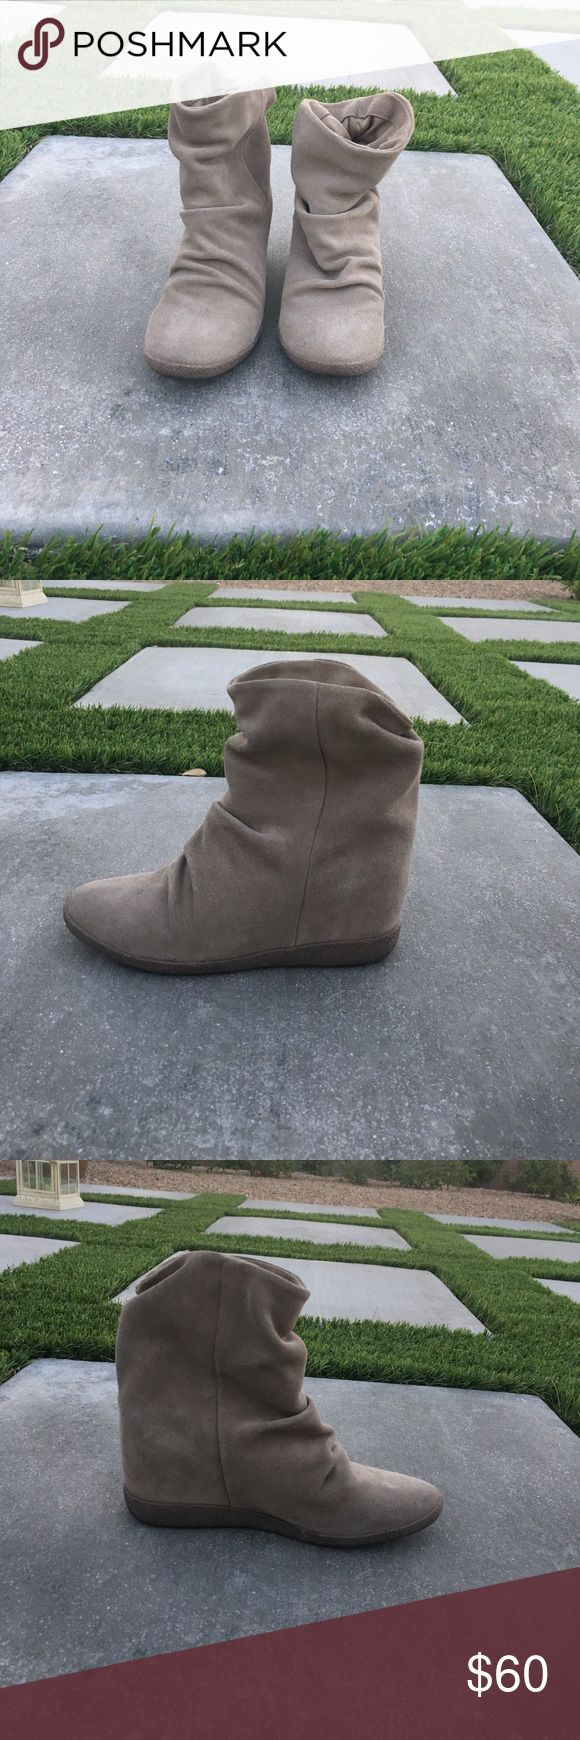 Steve Madden booties Very cute Steve Madden booties! Perfect for a casual date night or girls night out! These booties are suede and super comfy. Steve Madden Shoes Ankle Boots & Booties